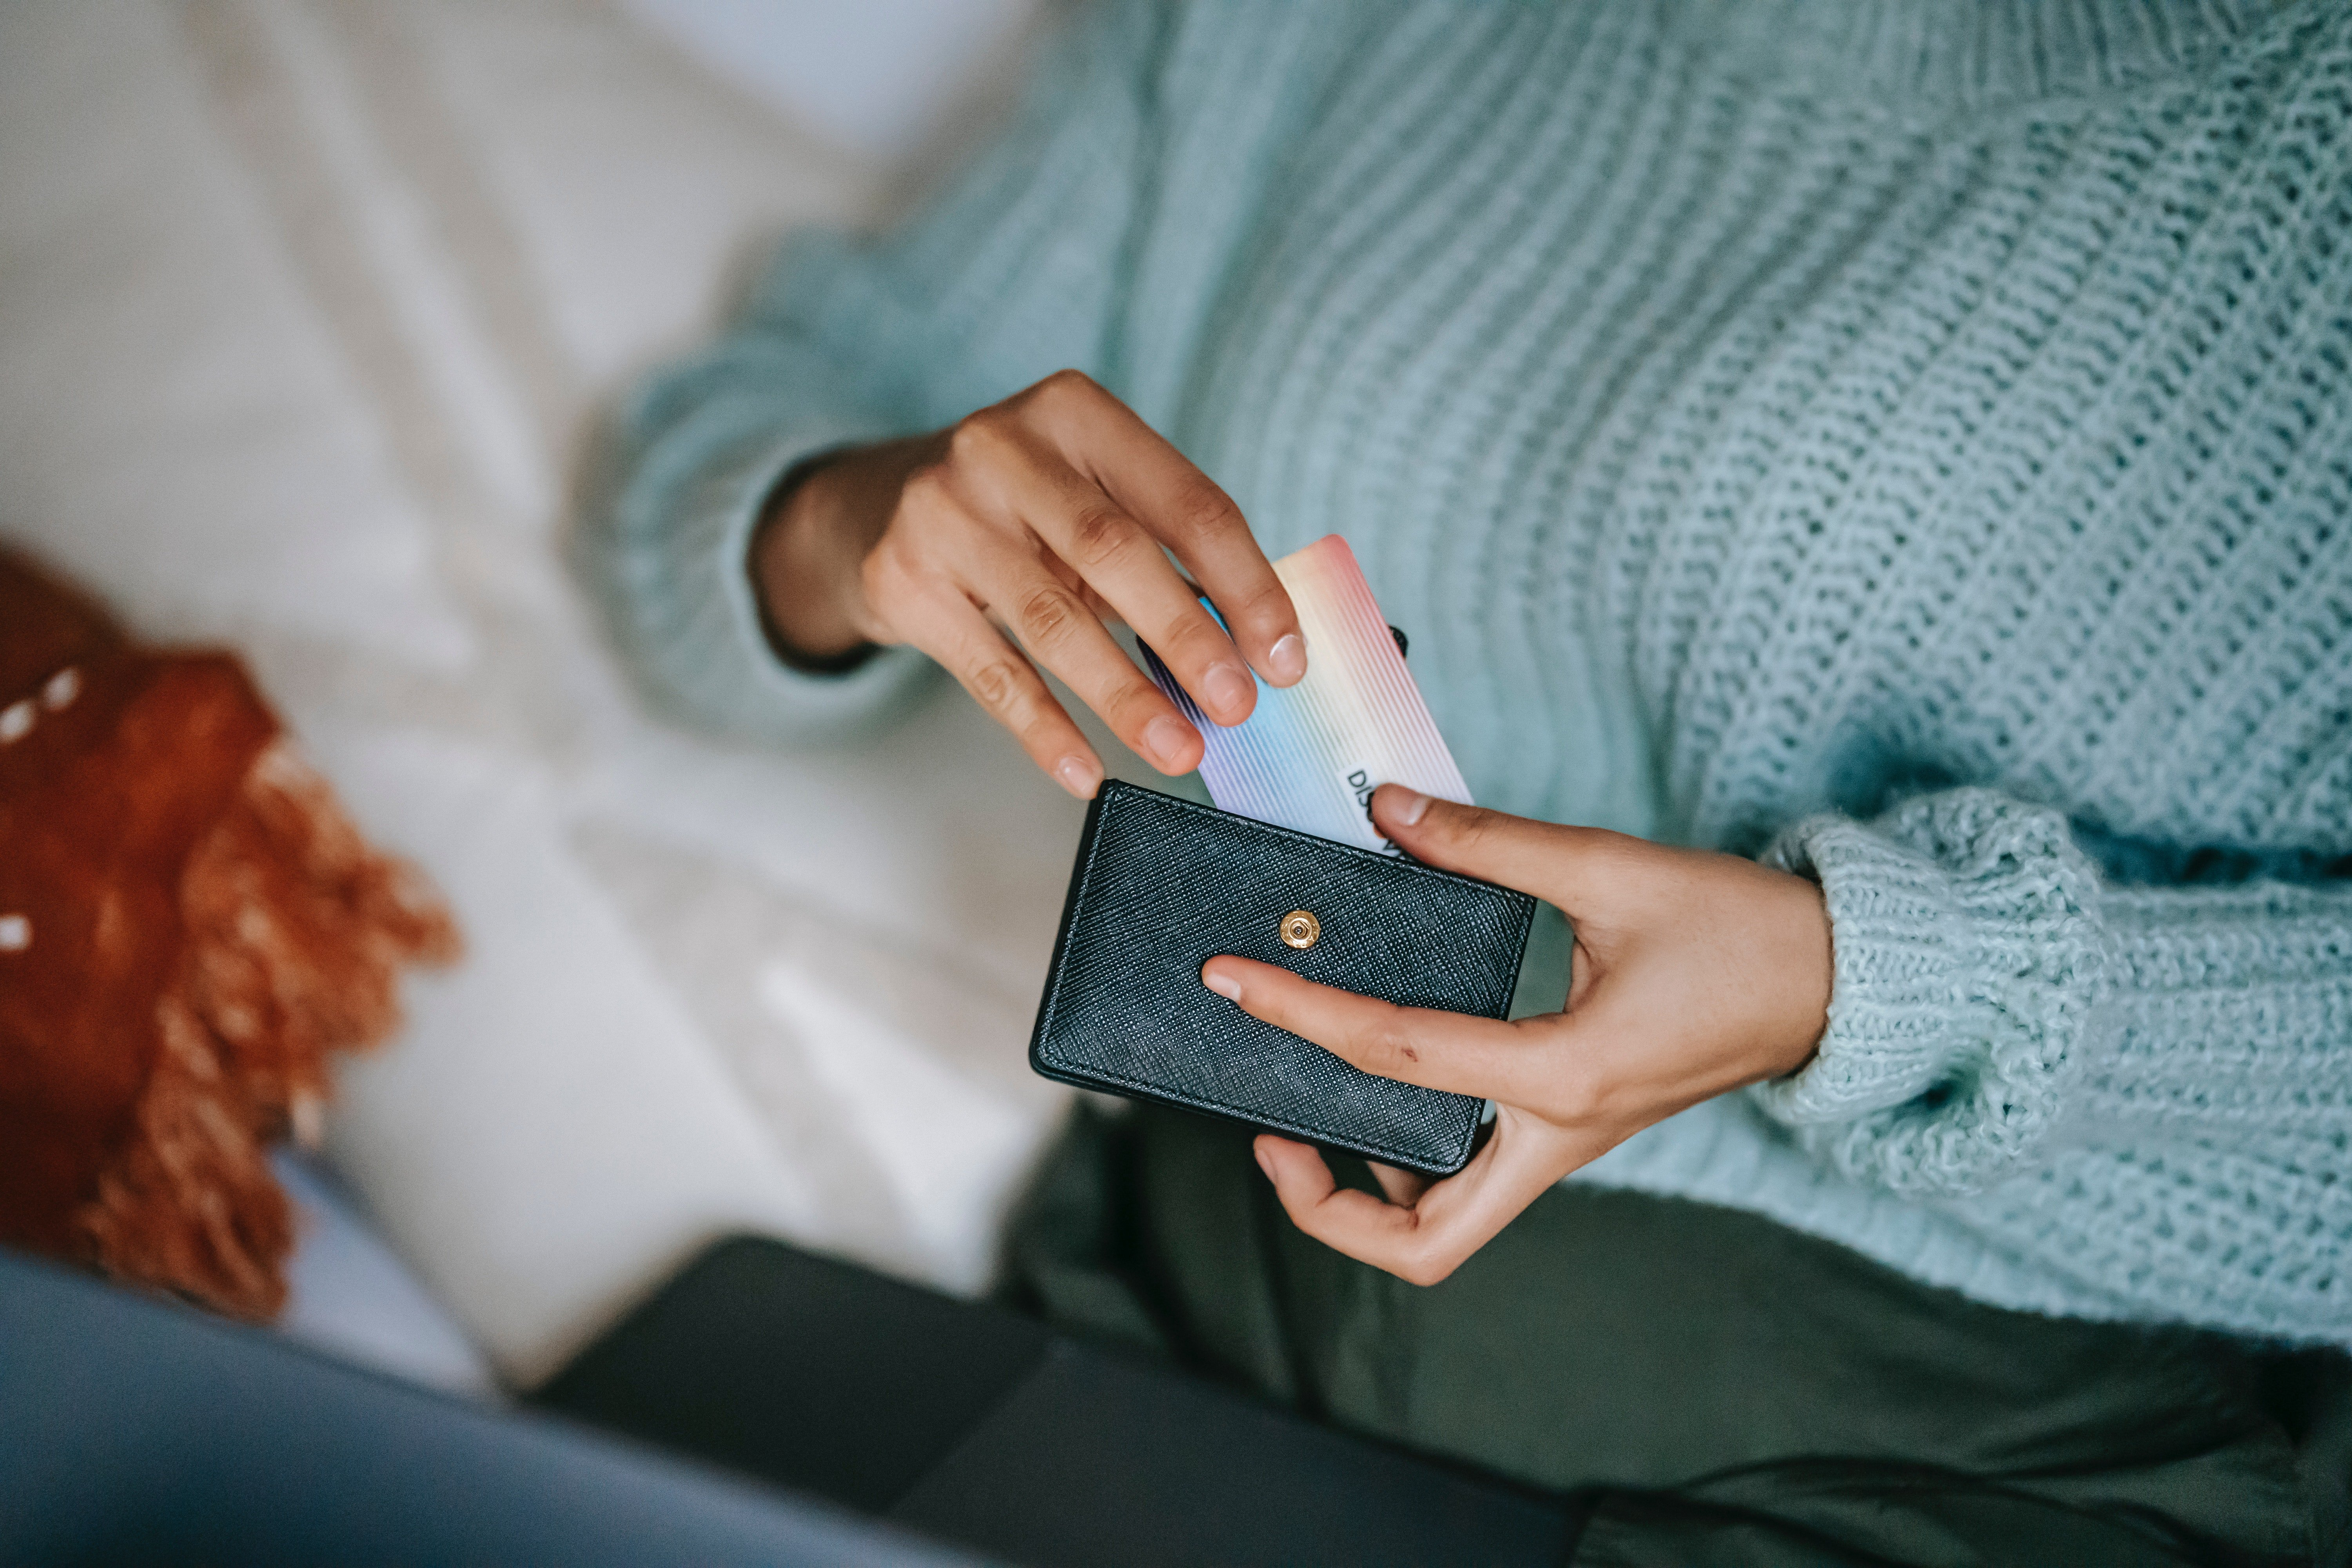 Gina misplaced her wallet and asked Amanda for money   Photo: Pexels